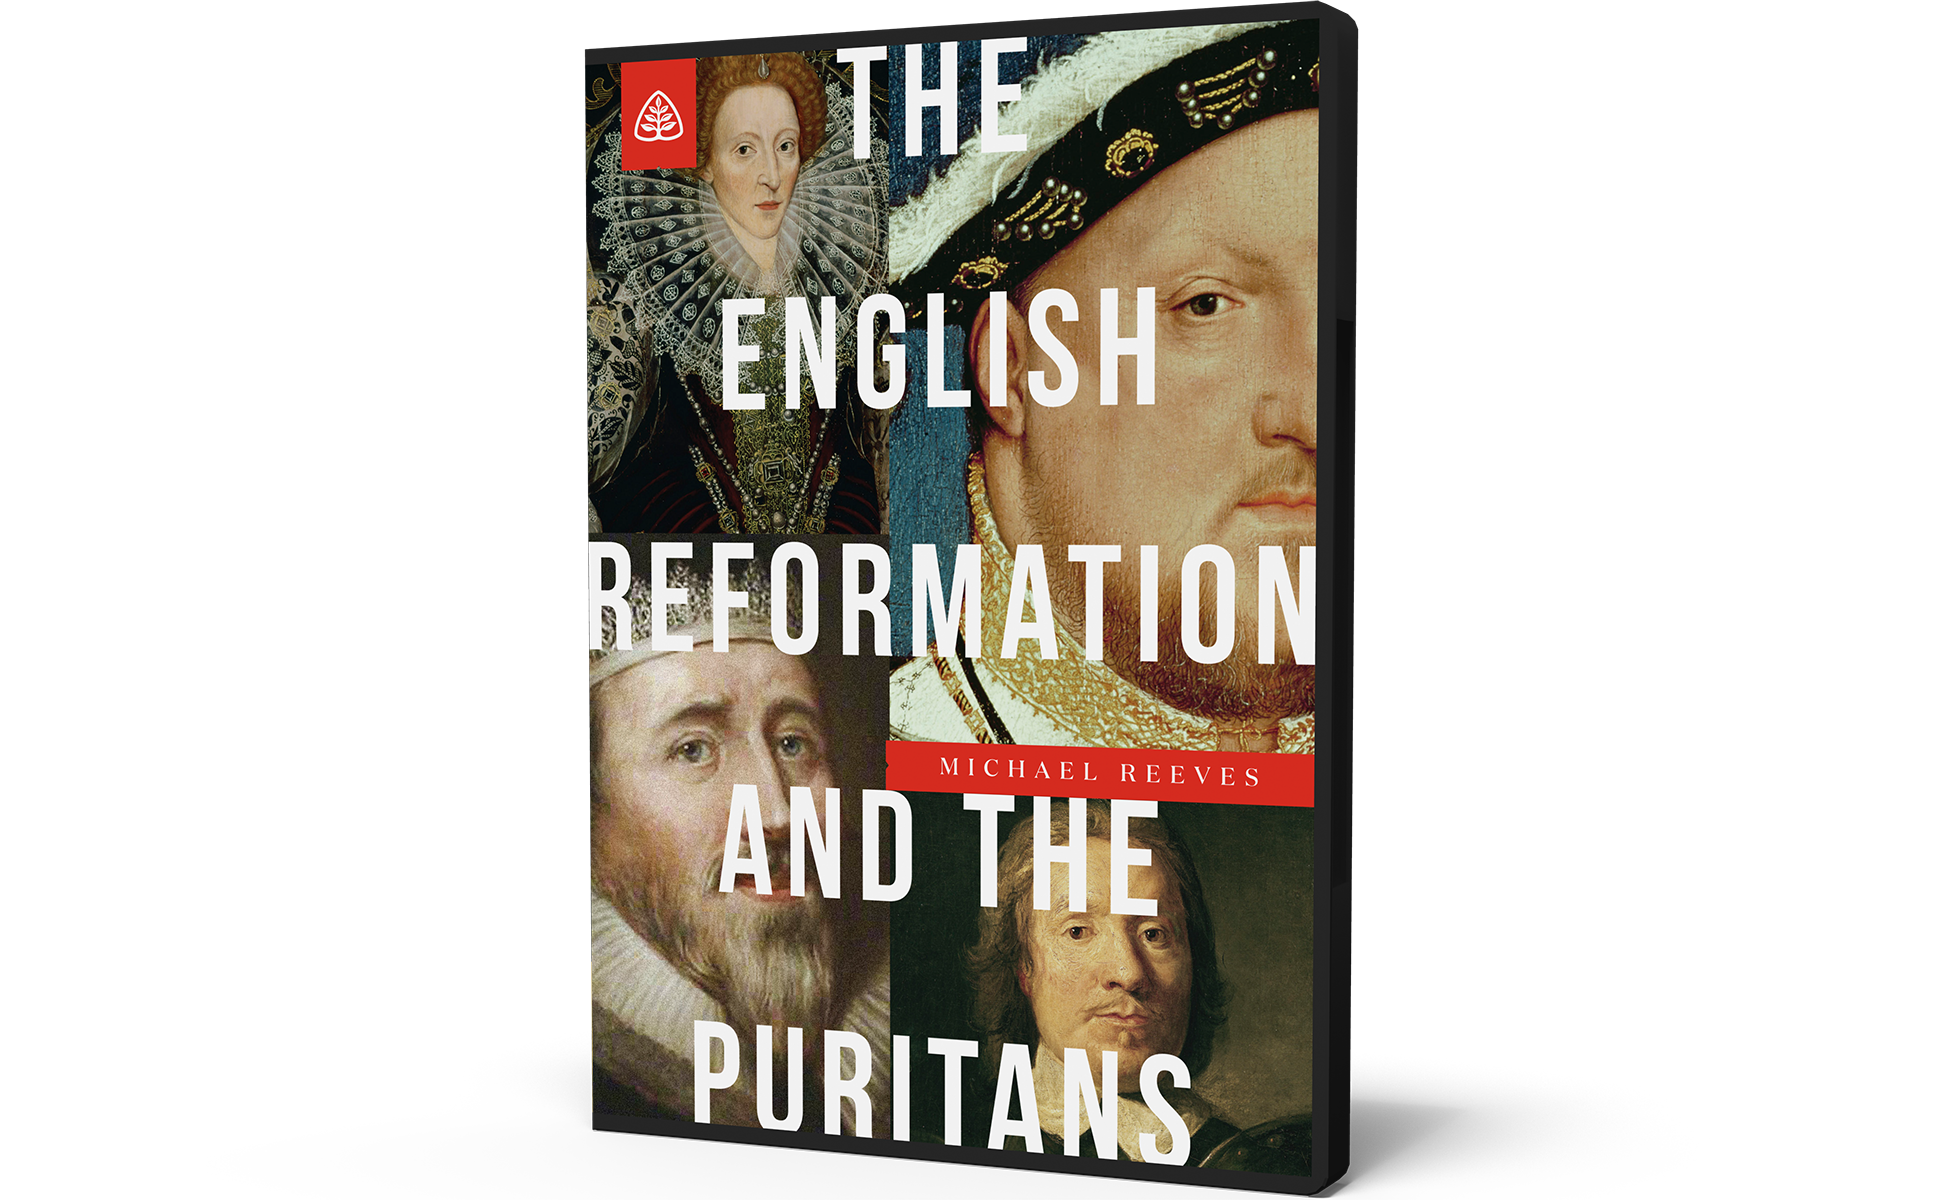 The English Reformation and the Puritans